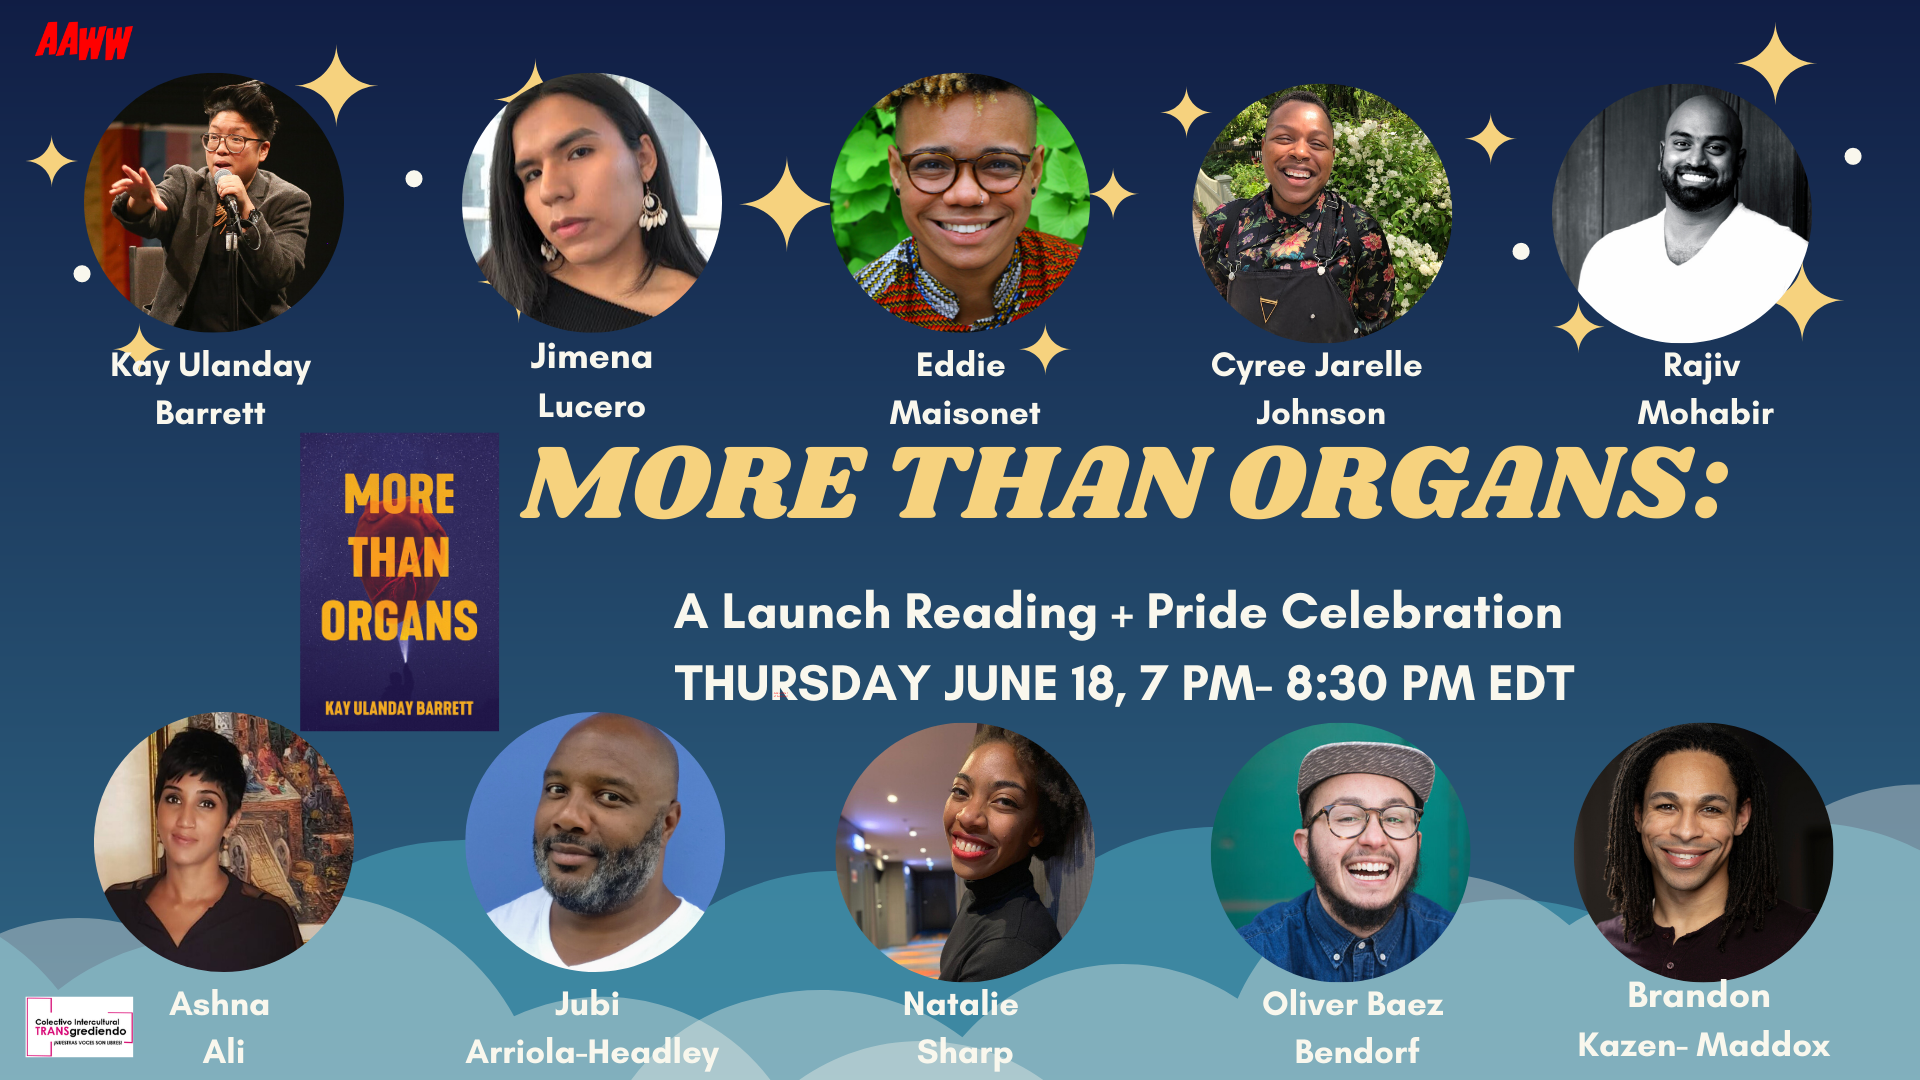 aaww.org: MORE THAN ORGANS: Book Launch Reading + PRIDE Celebration